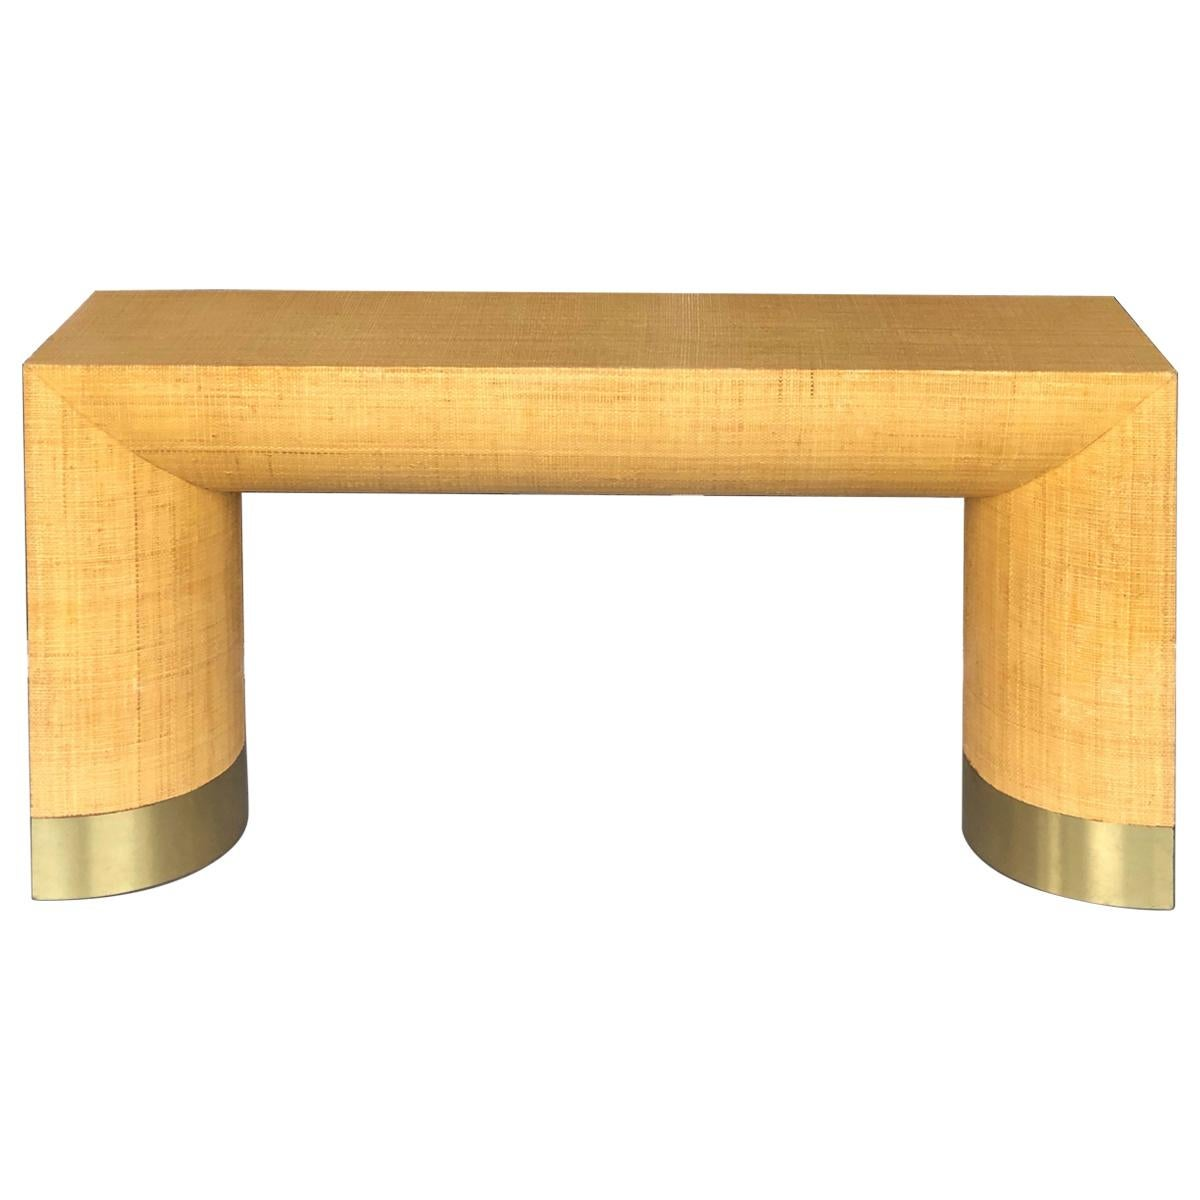 Modern Rattan and Brass Console Table, 1970s